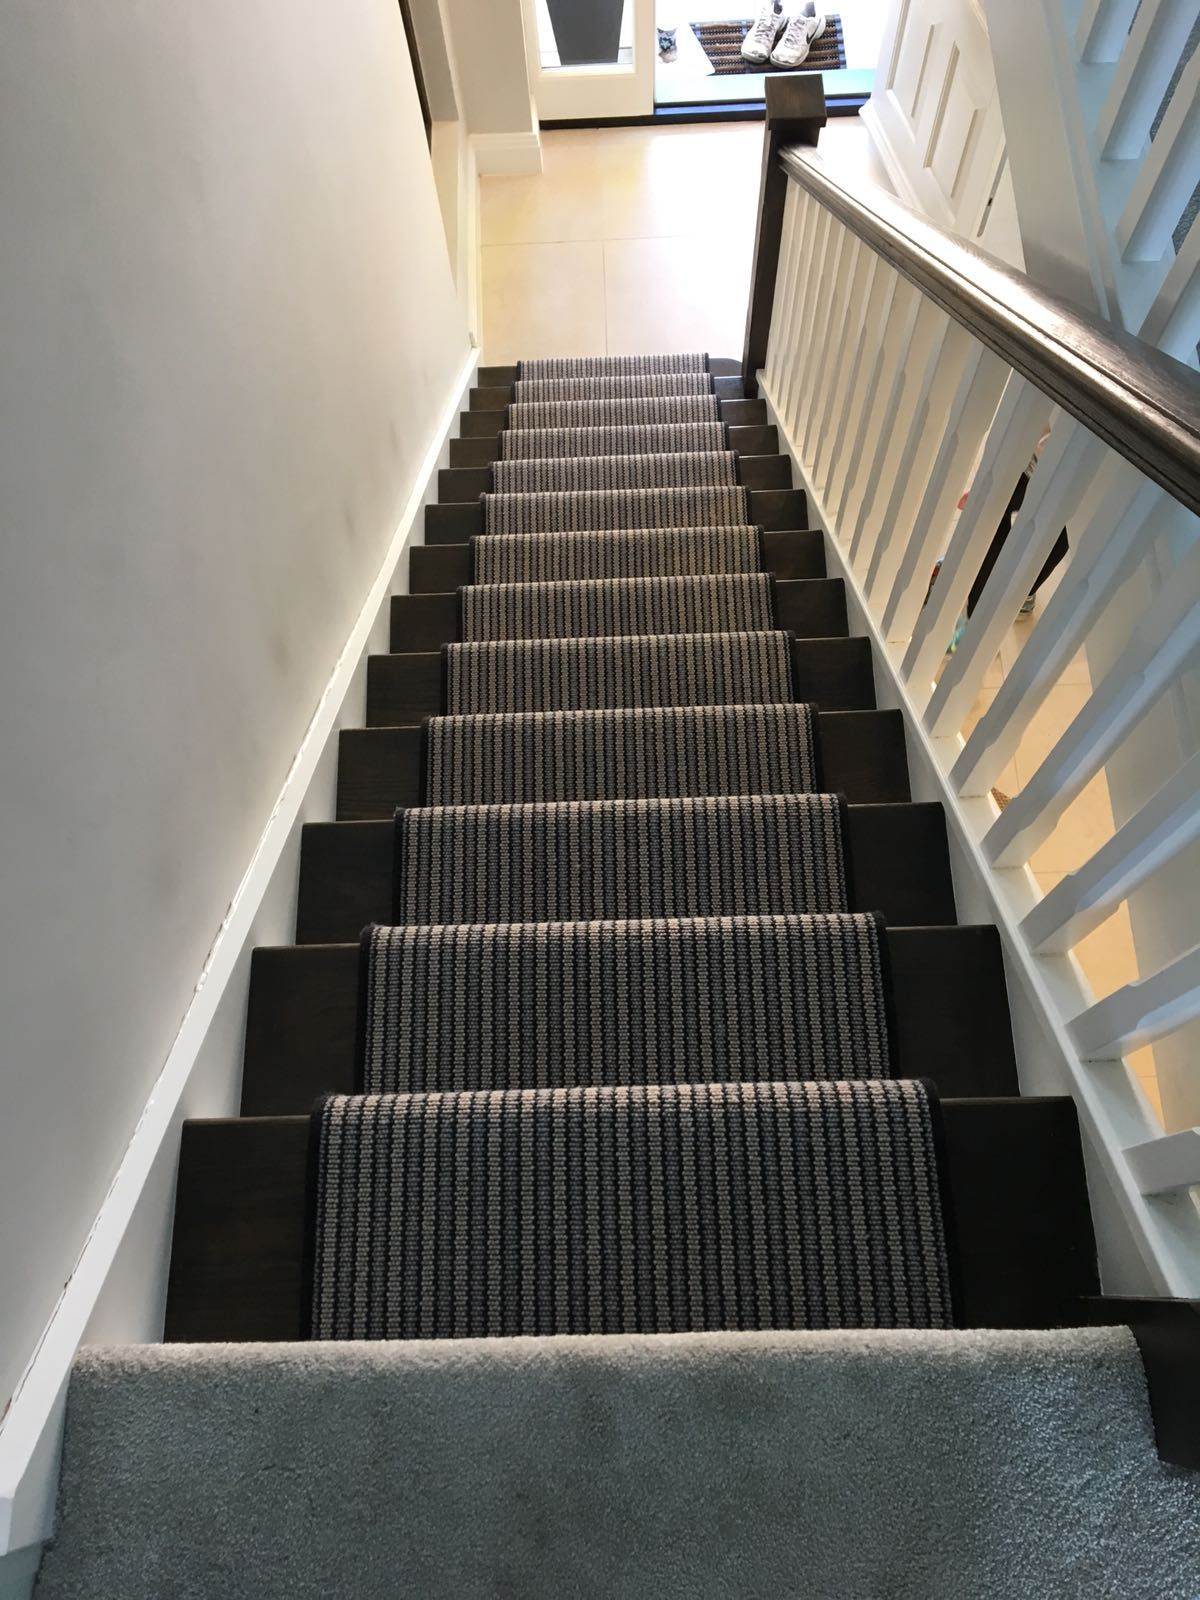 Striped Carpet Fitted As A Bespoke Whipped Stair Runner To Dark | Dark Carpet On Stairs | Gray | Monochrome | Wall | Modern | Metal Bar On Stair